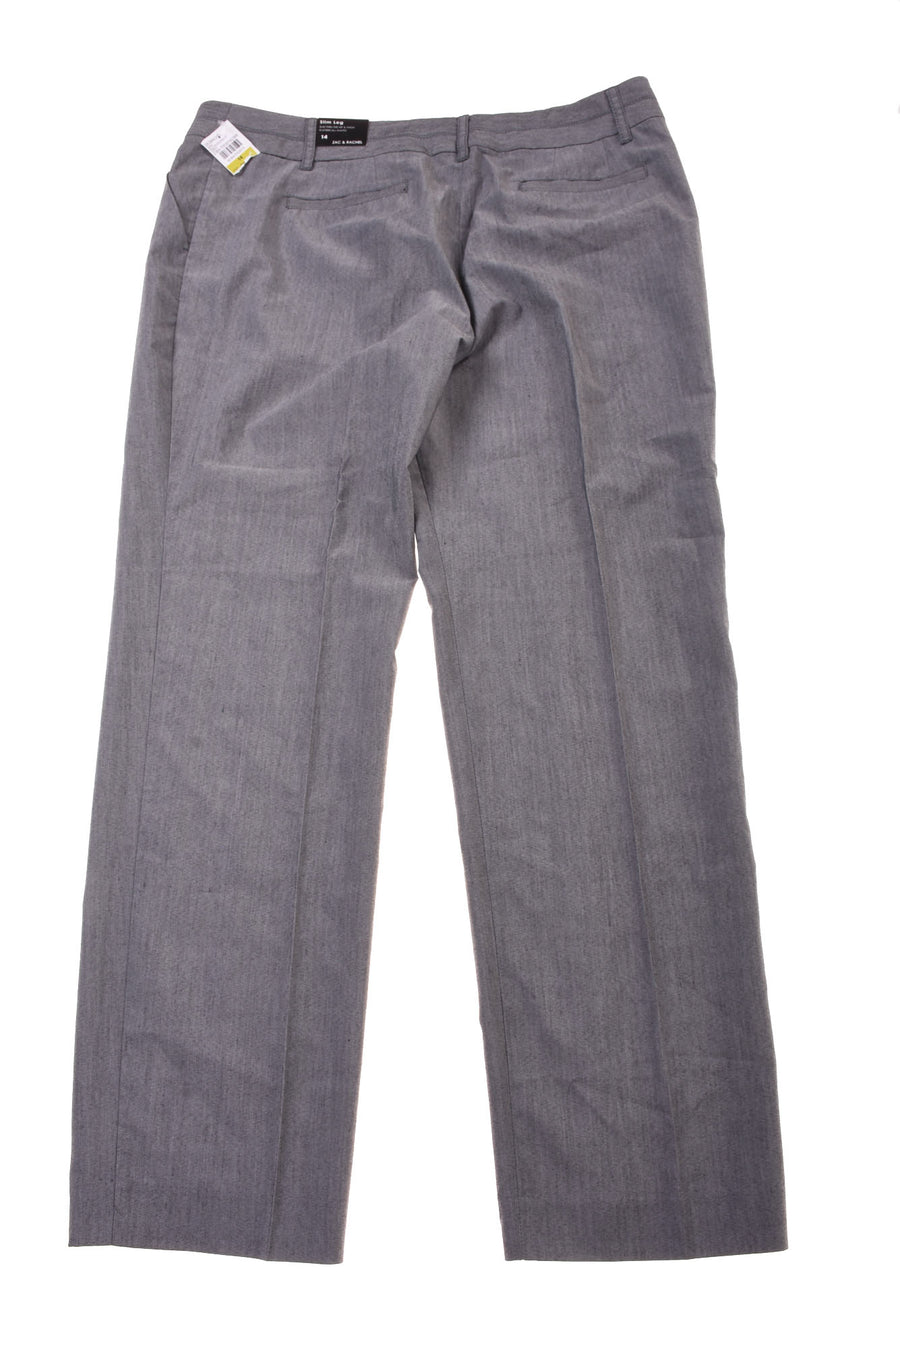 NEW Zac & Rachel Women's Slacks 14 Gray